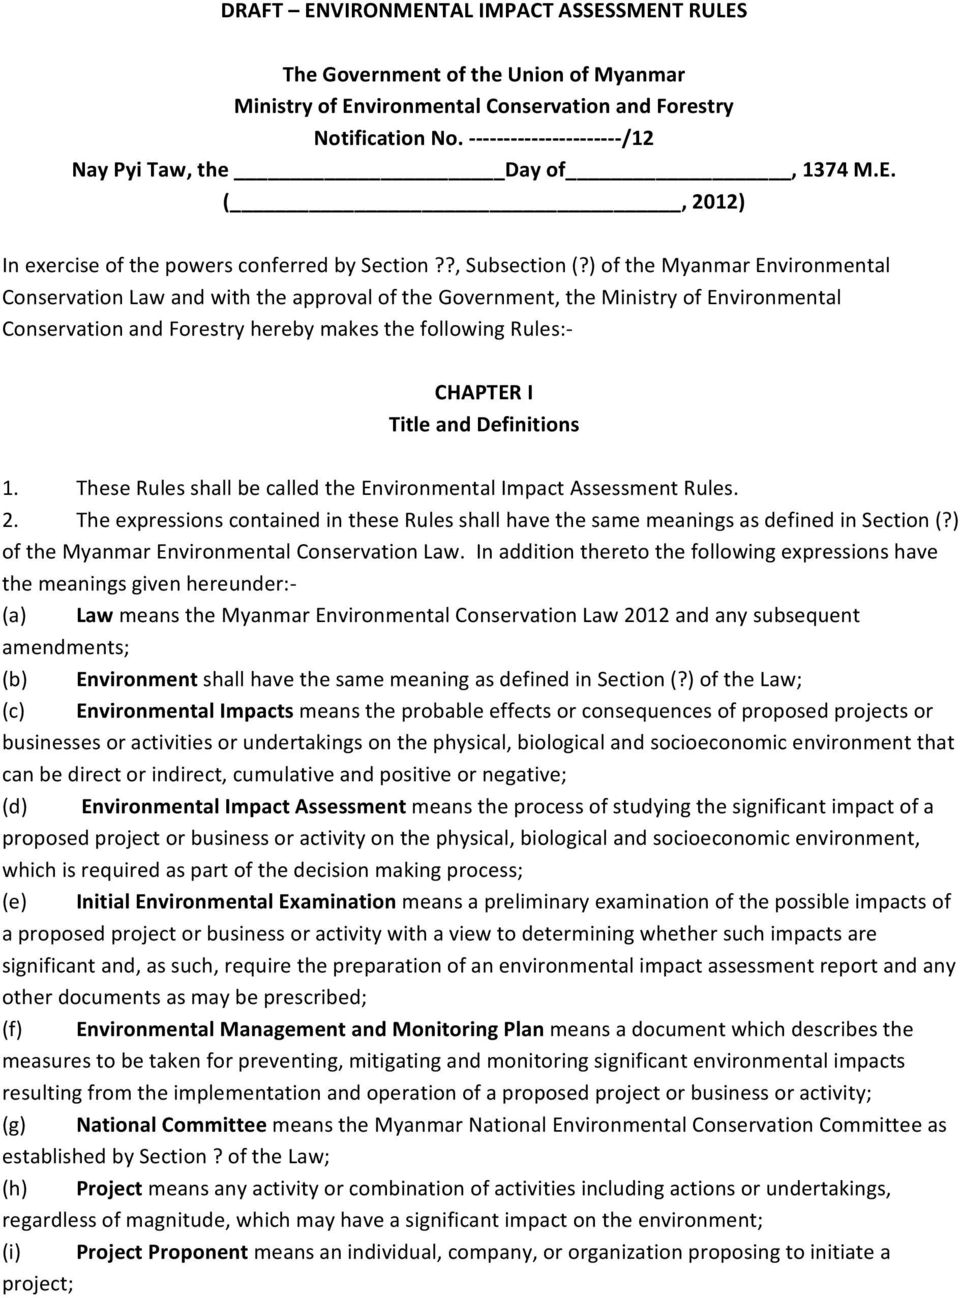 ) of the Myanmar Environmental Conservation Law and with the approval of the Government, the Ministry of Environmental Conservation and Forestry hereby makes the following Rules: CHAPTER I Title and